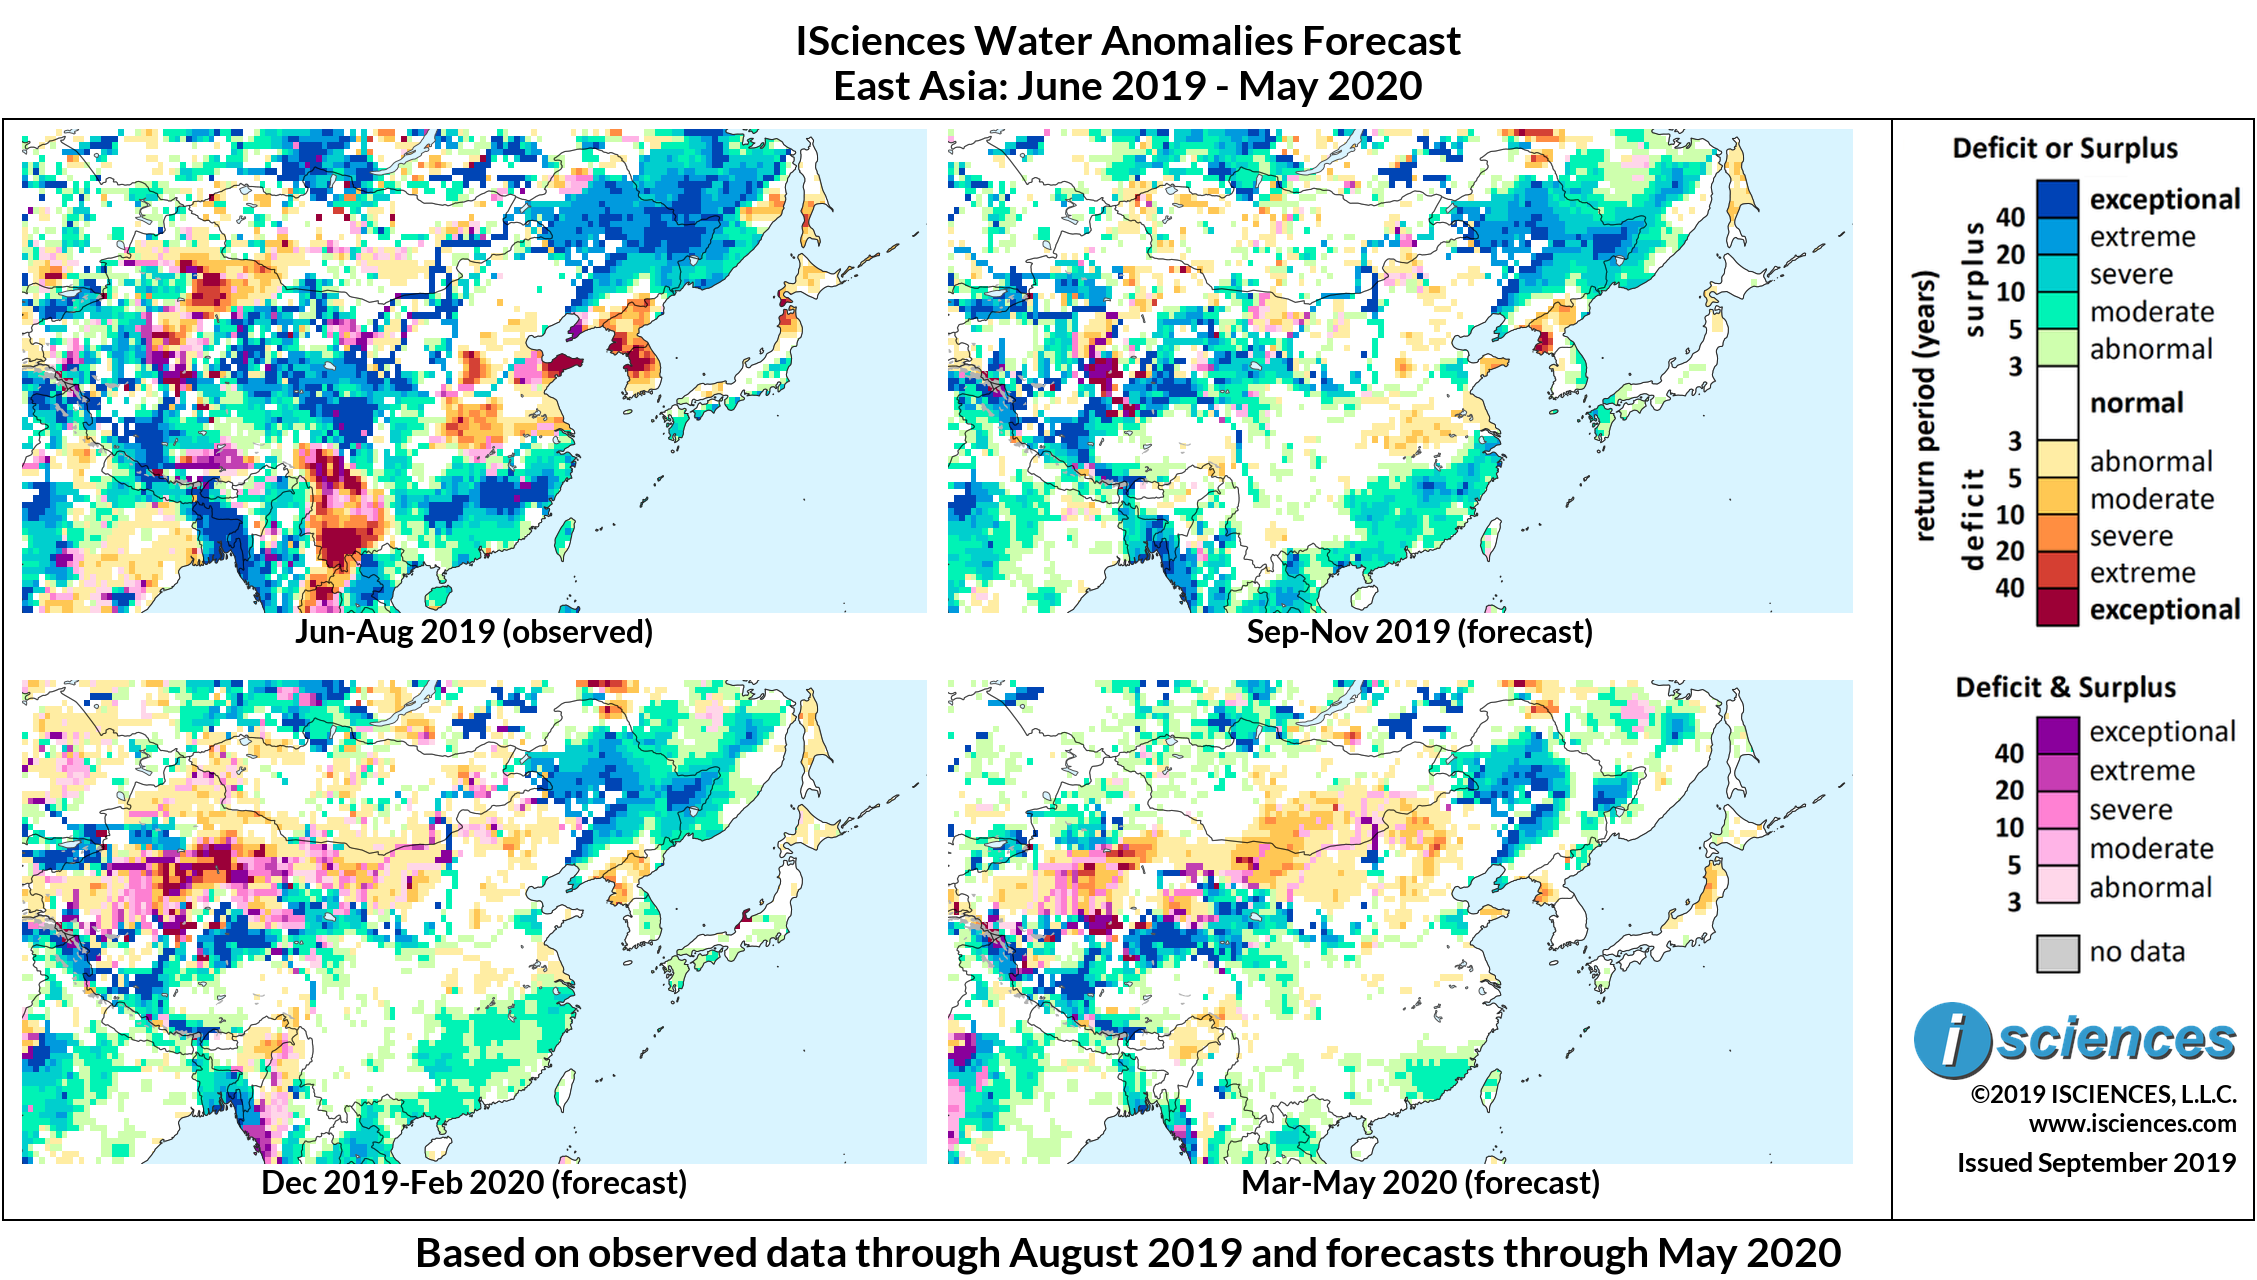 ISciences_East_Asia_Composite_Adjusted_201906-202005_3mo_panel.png